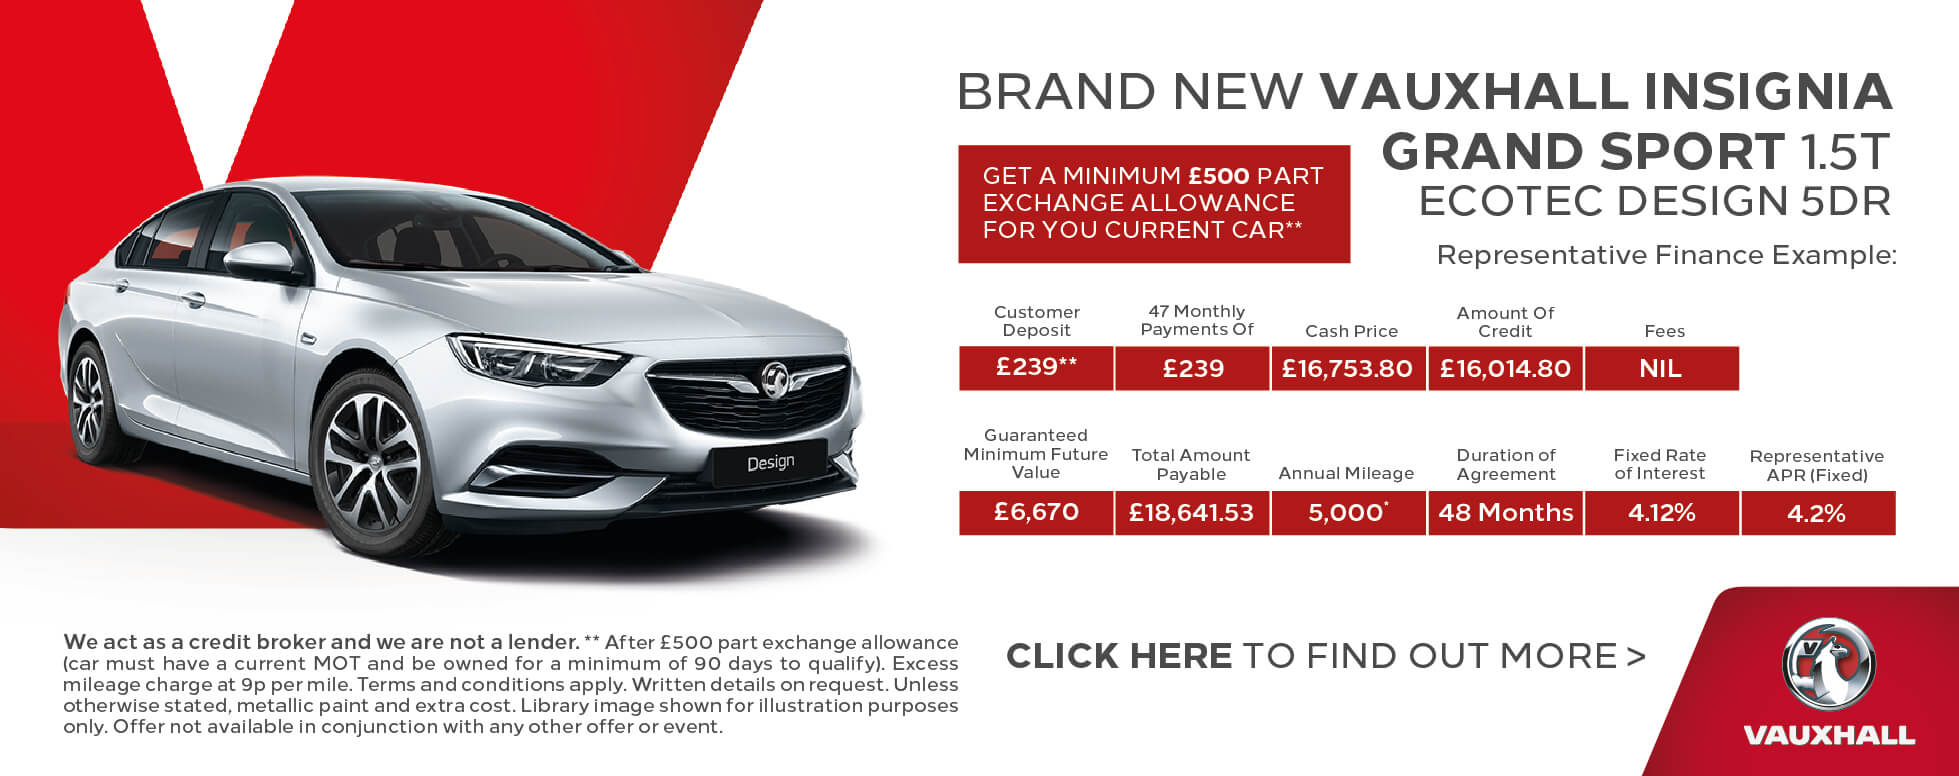 The New Vauxhall Insignia Grand Sport 1.5T Design BB